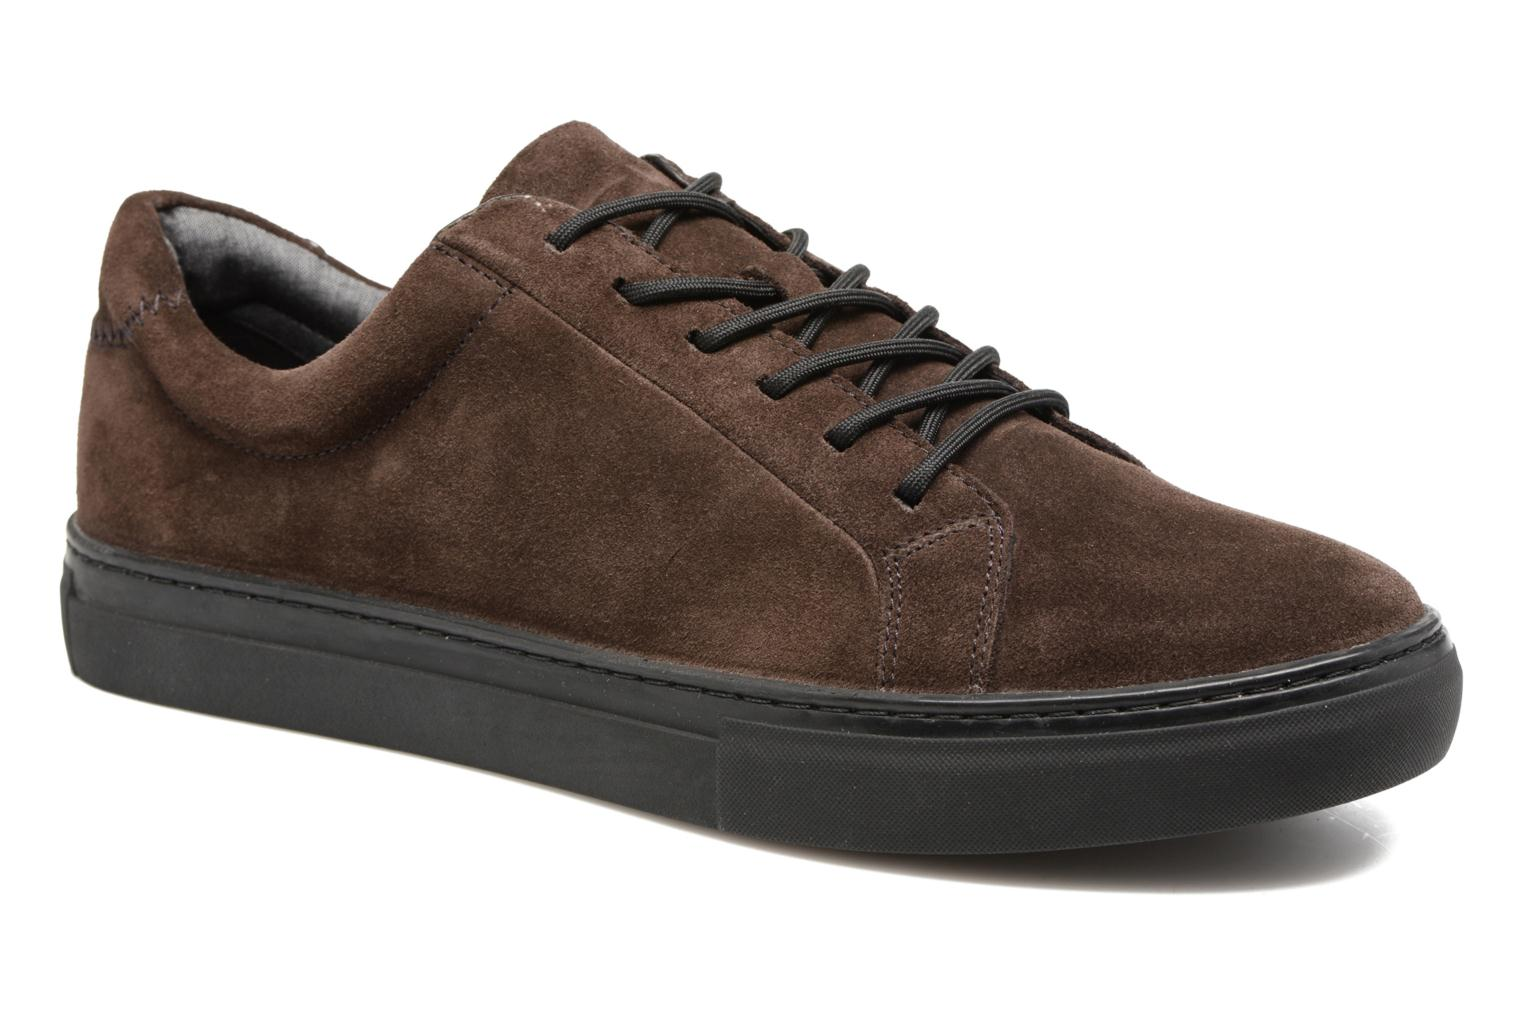 Sneakers Vagabond Shoemakers Bruin